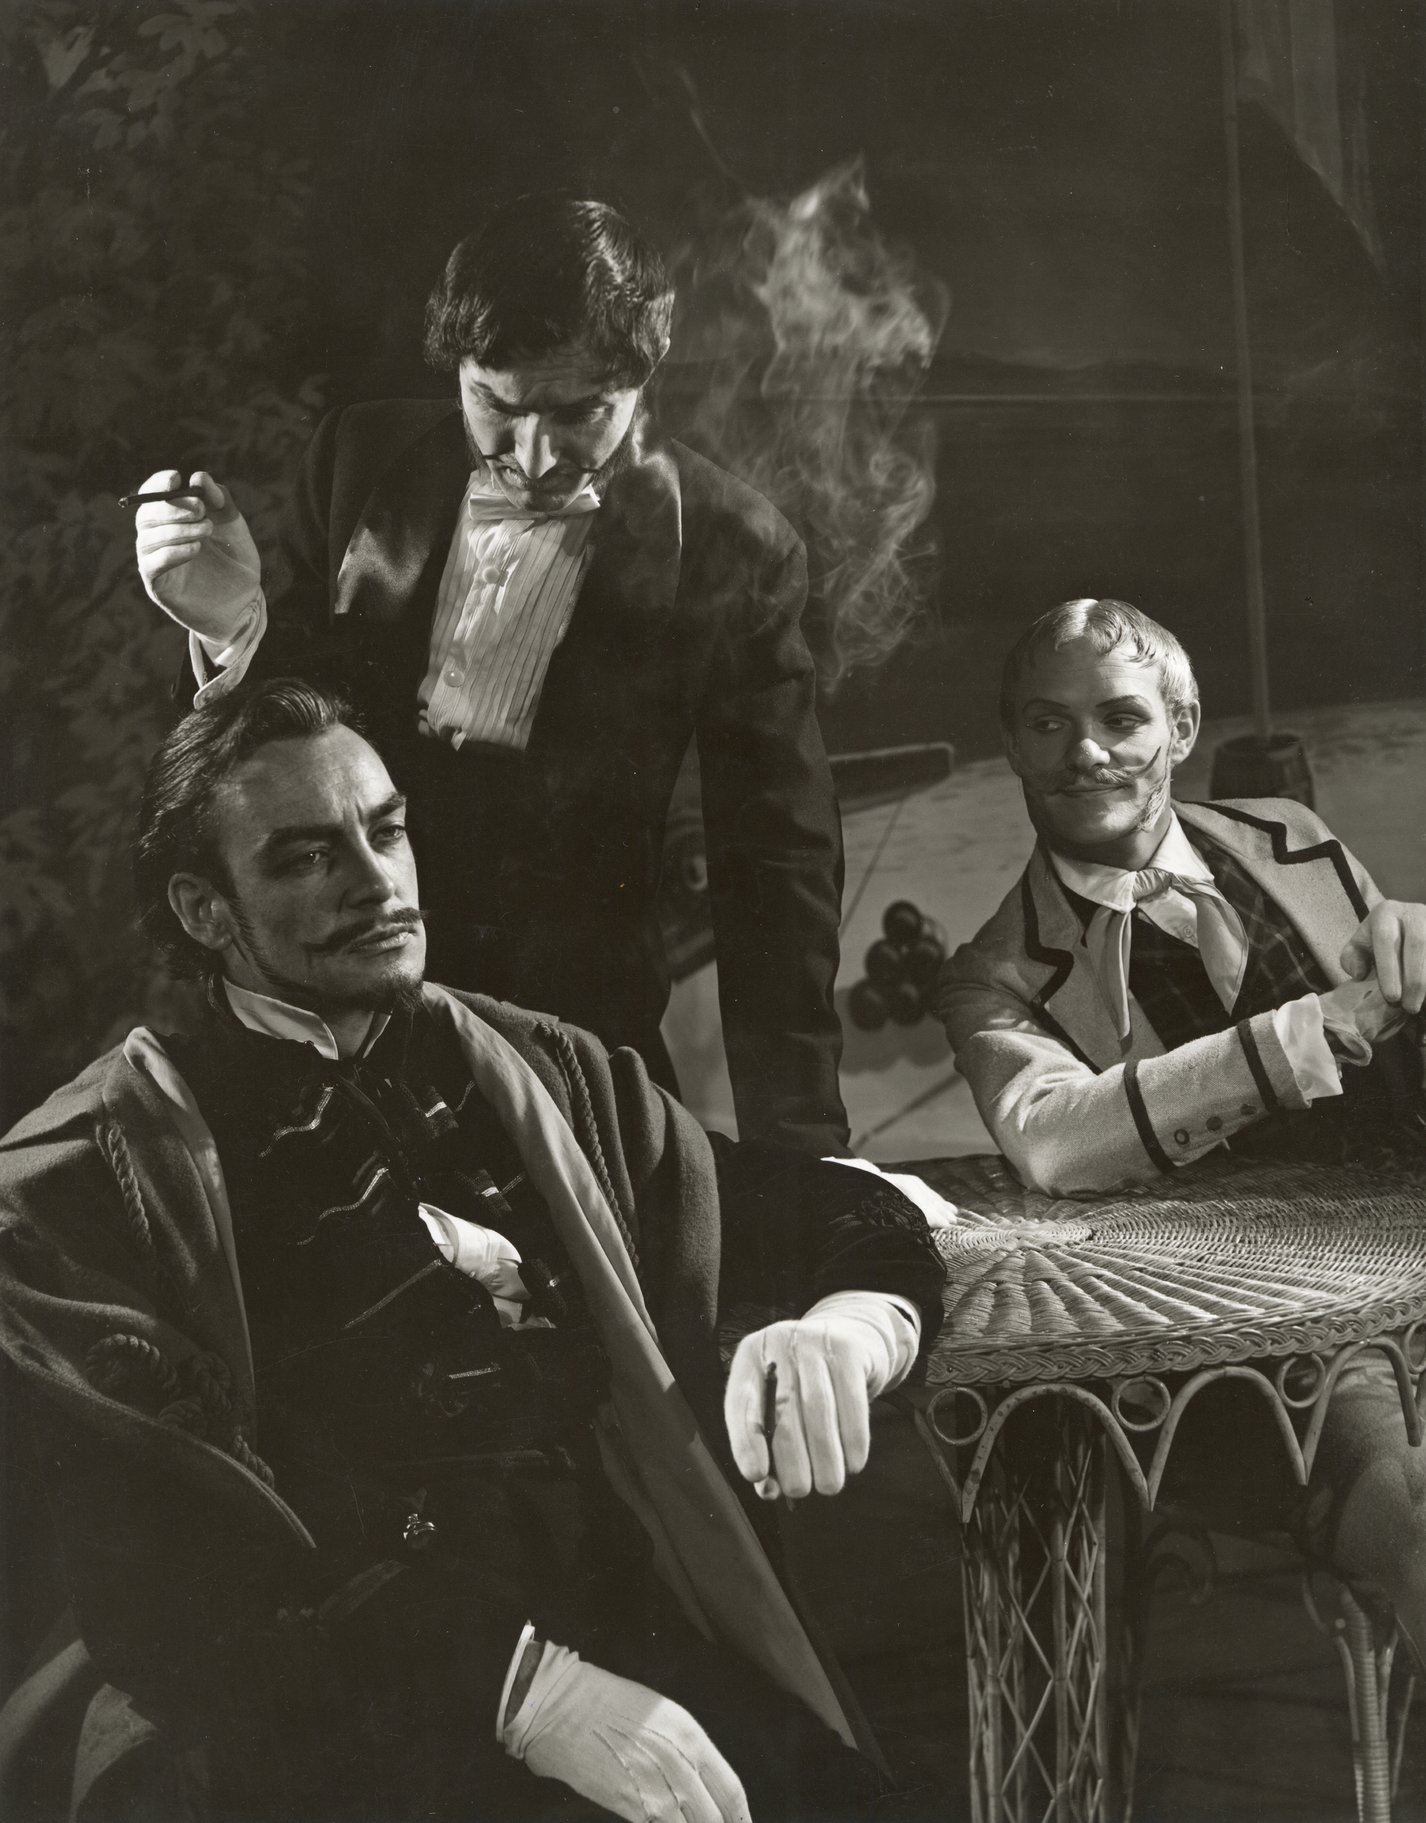 Don John (Richard Johnson), Borachio (Peter Palmer) and Conrade (Julian Glover) conspire to ruin Hero and Claudio's marriage.